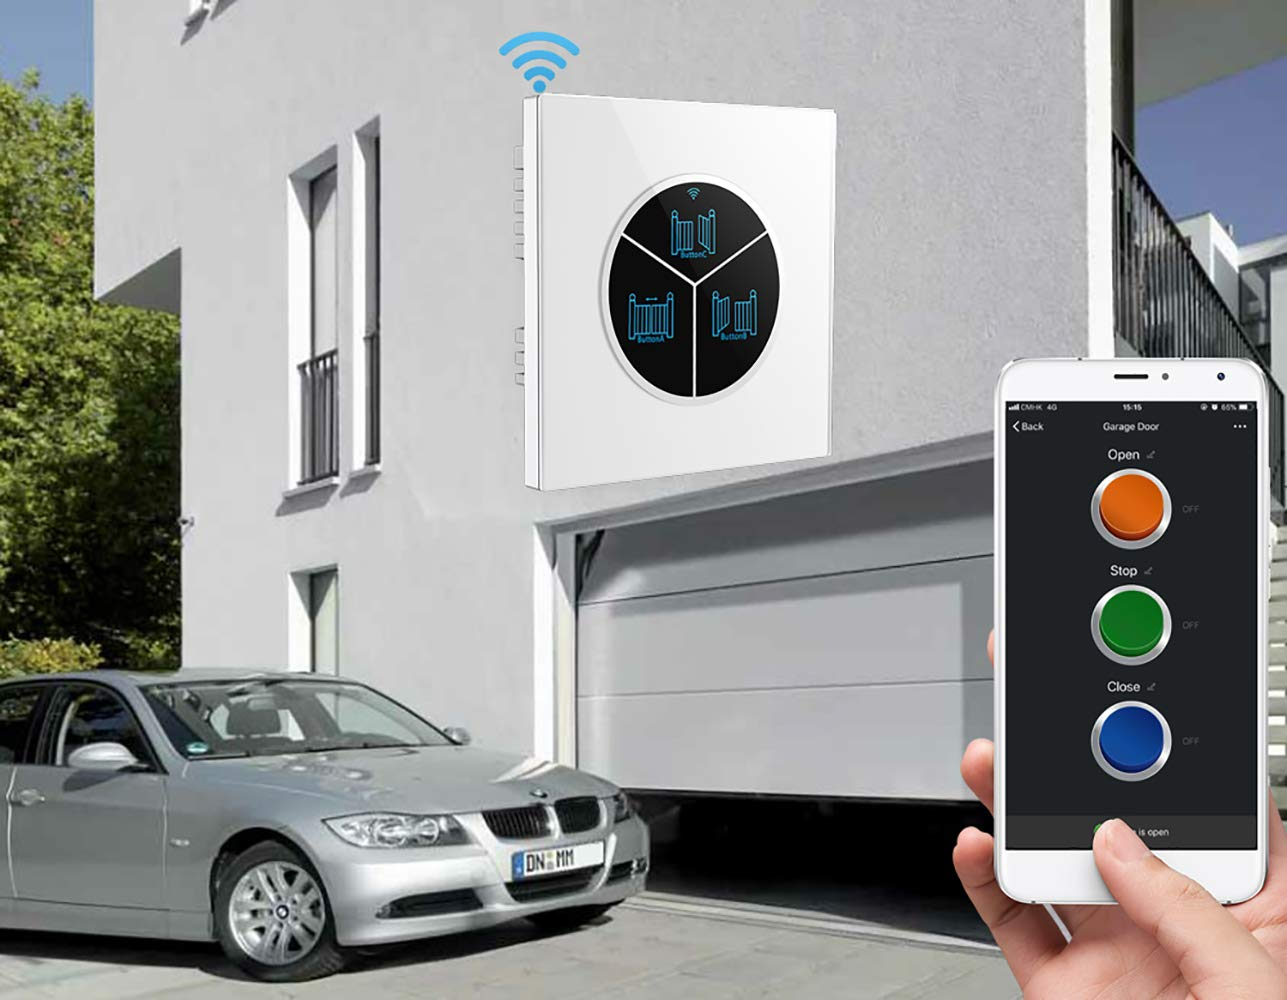 Wireless Garage Door Opener Remote WiFi Switch Universal Controlled by Smartphone for Automatic Gate Opener System (Without Door Sensor) - - Amazon.com